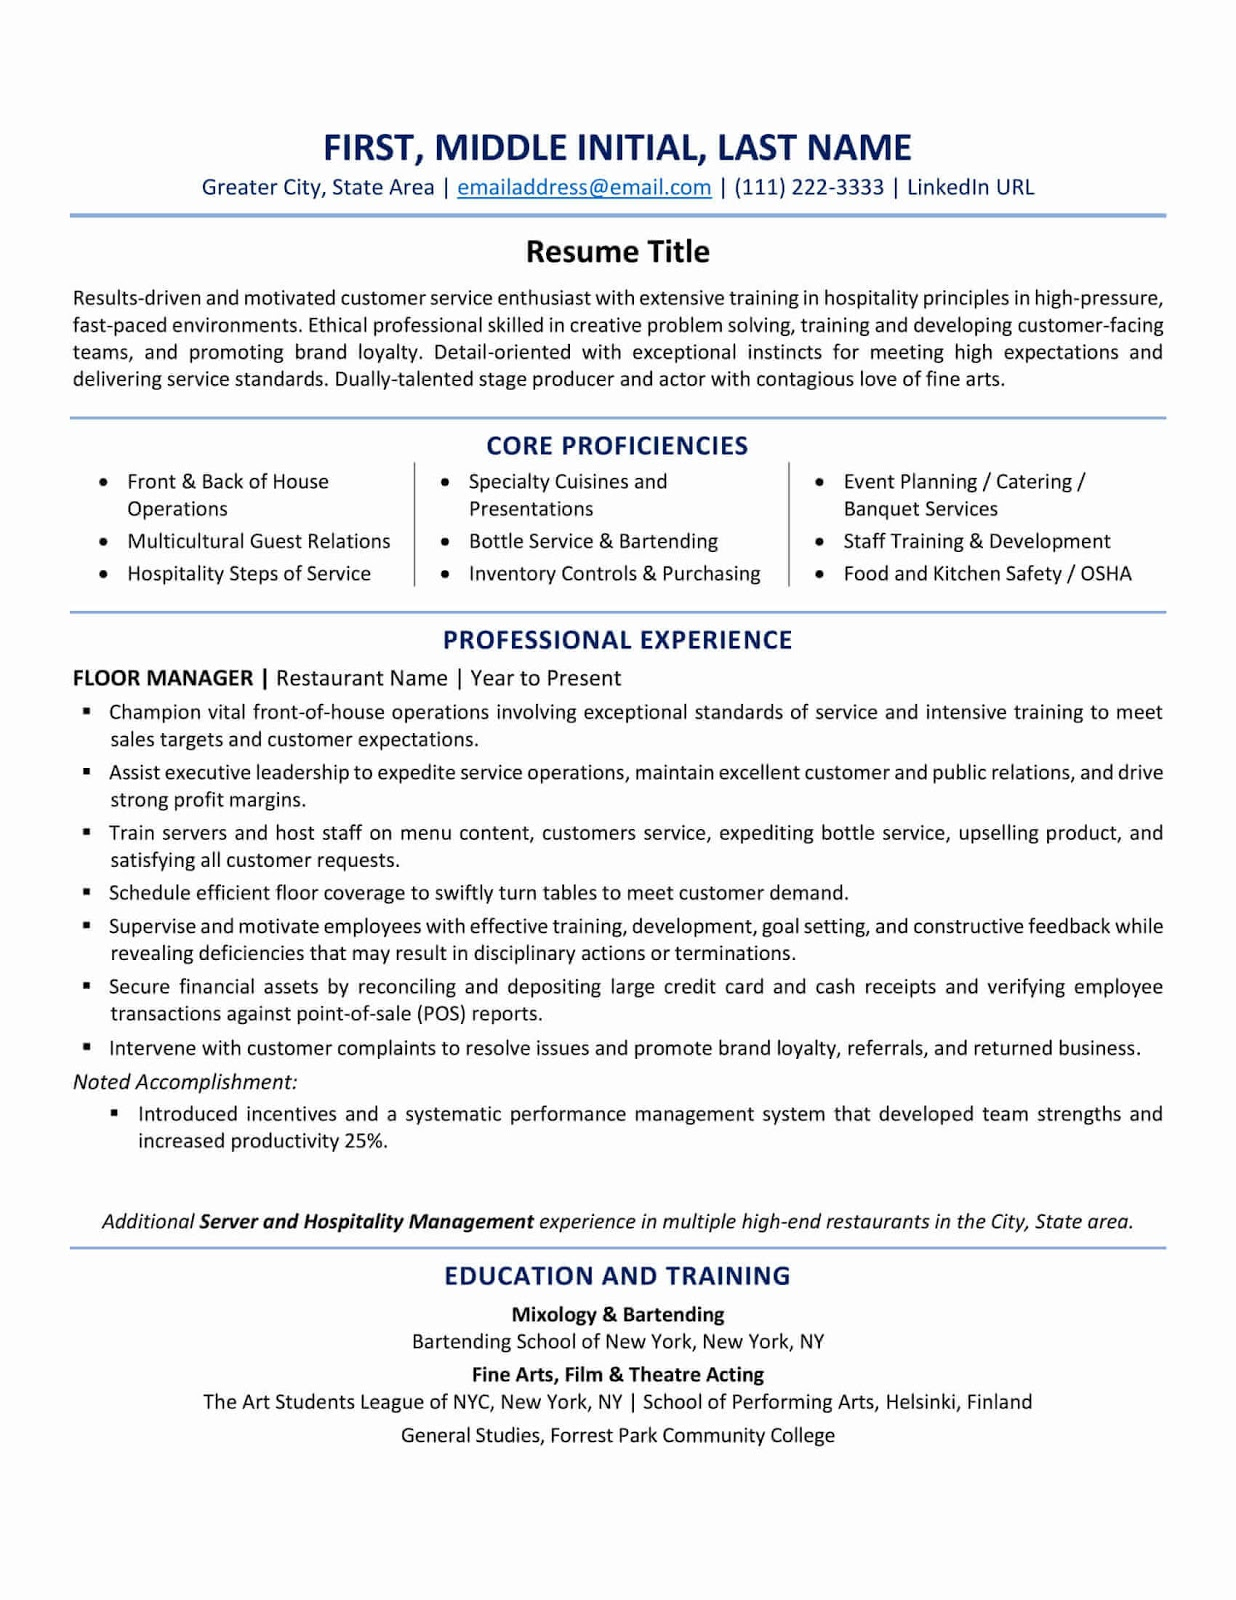 resume format best tips and examples updated zipjob current voice data technician Resume Current Resume Format 2019